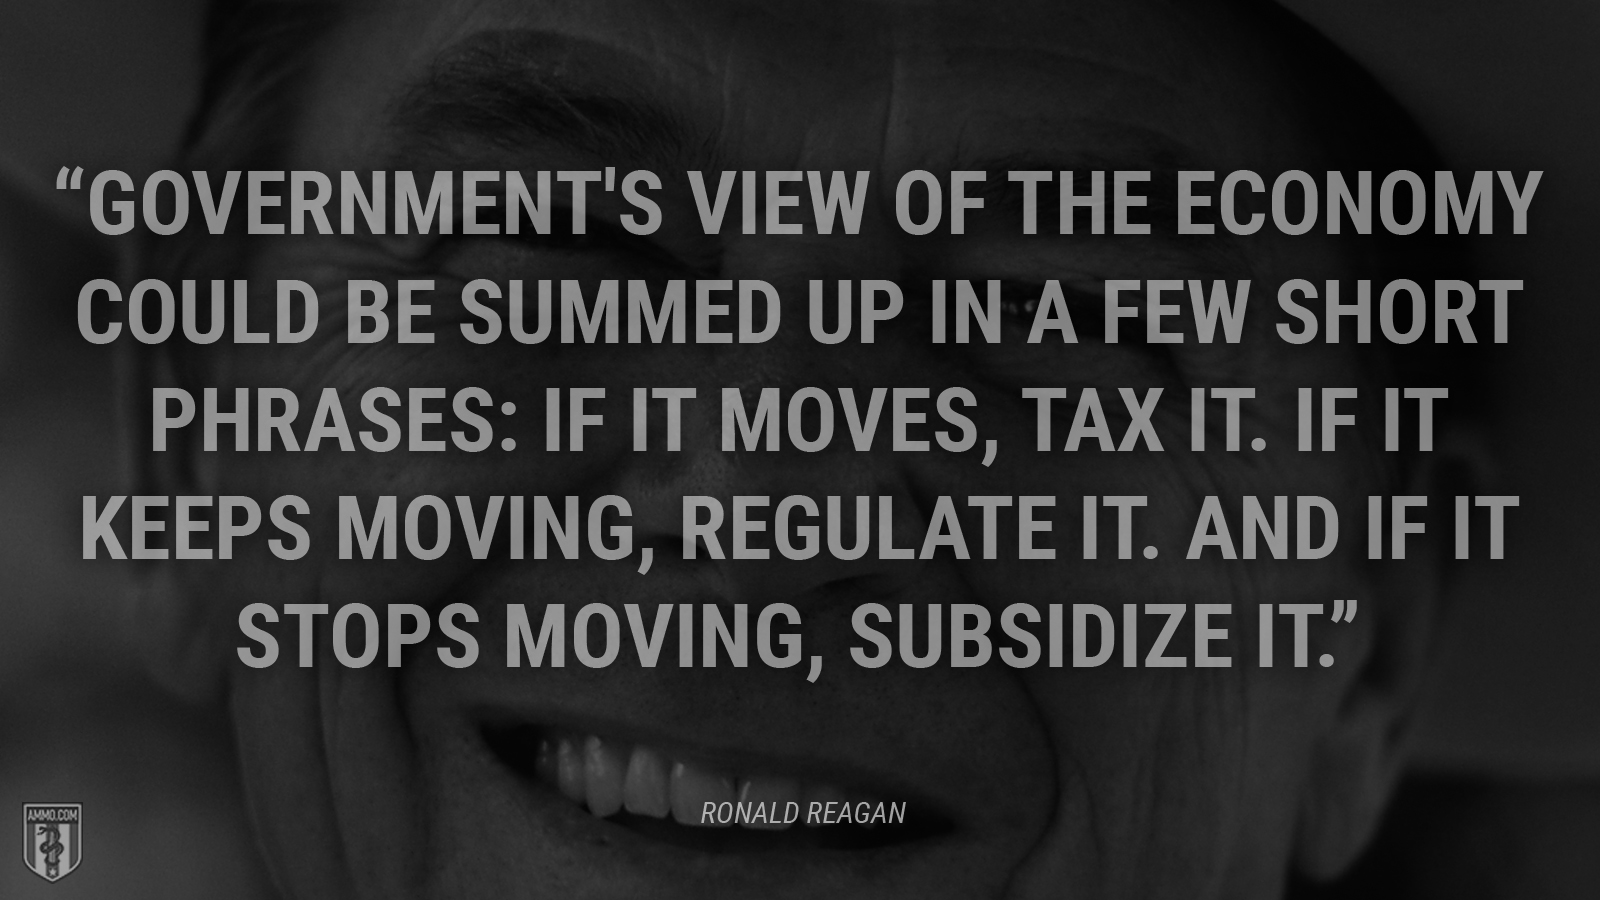 """Government's view of the economy could be summed up in a few short phrases: If it moves, tax it. If it keeps moving, regulate it. And if it stops moving, subsidize it."" - Ronald Reagan"